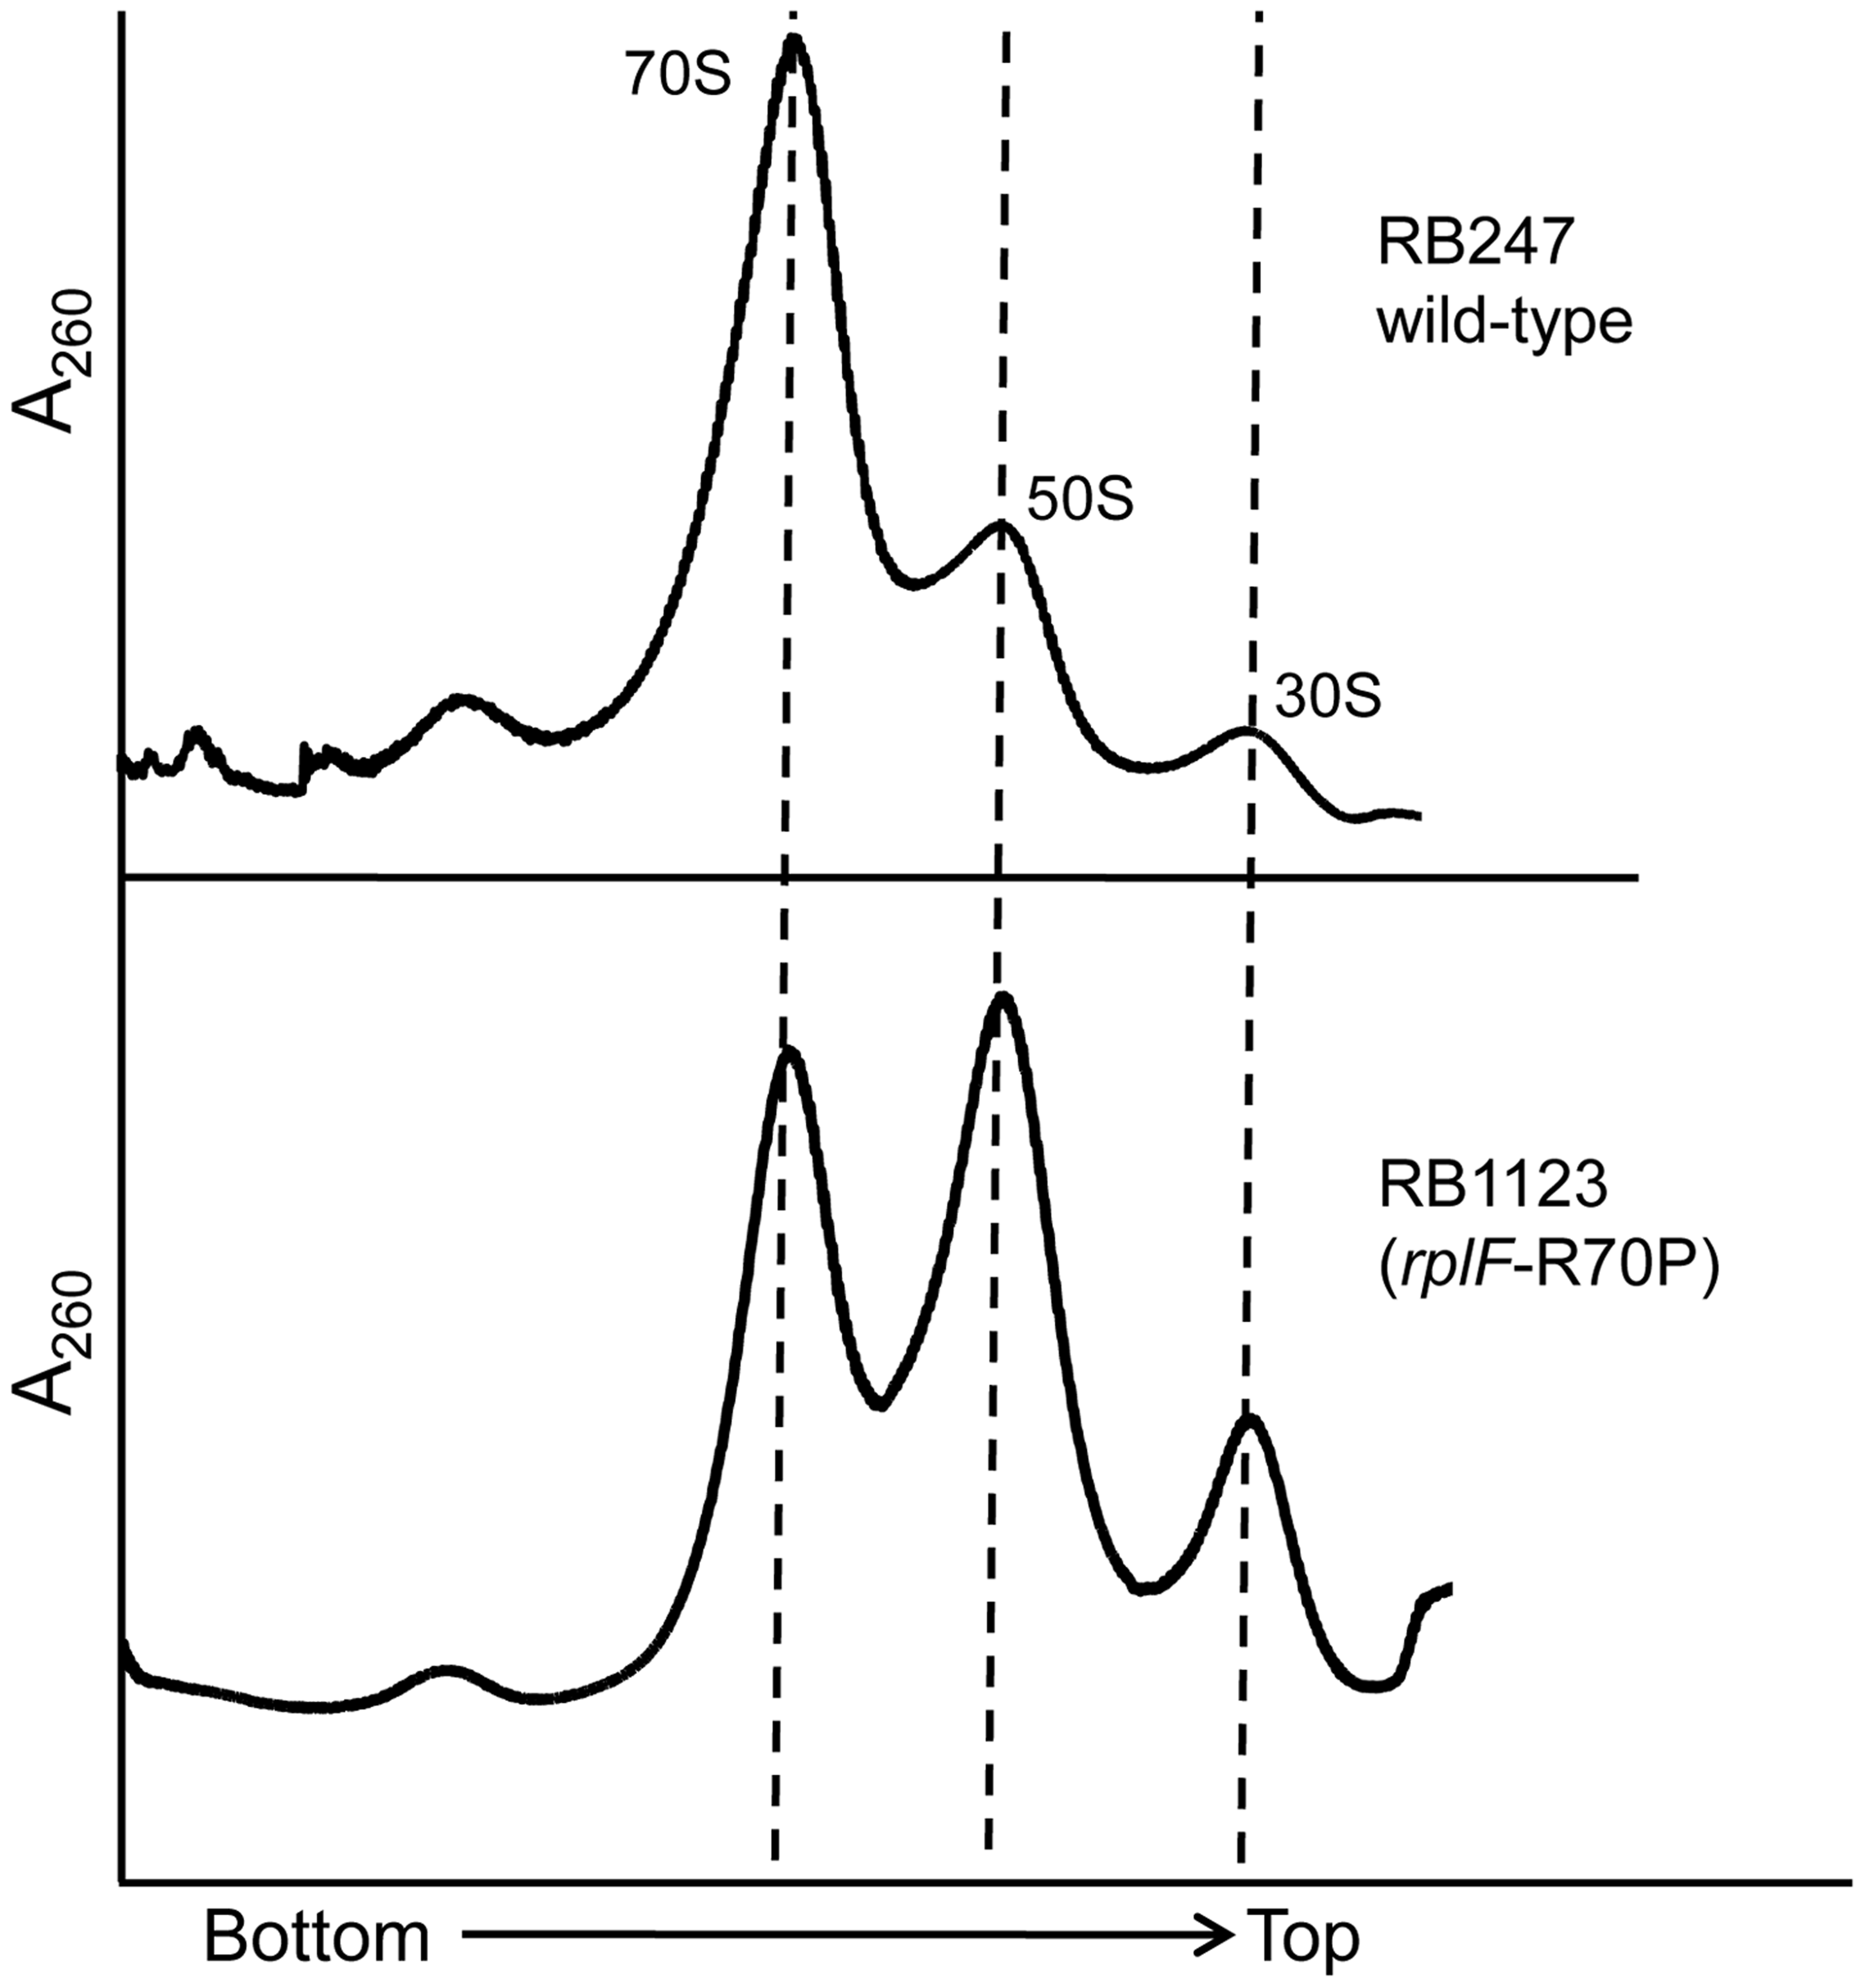 Mutations in L6 protein affect subunit joining/interaction.